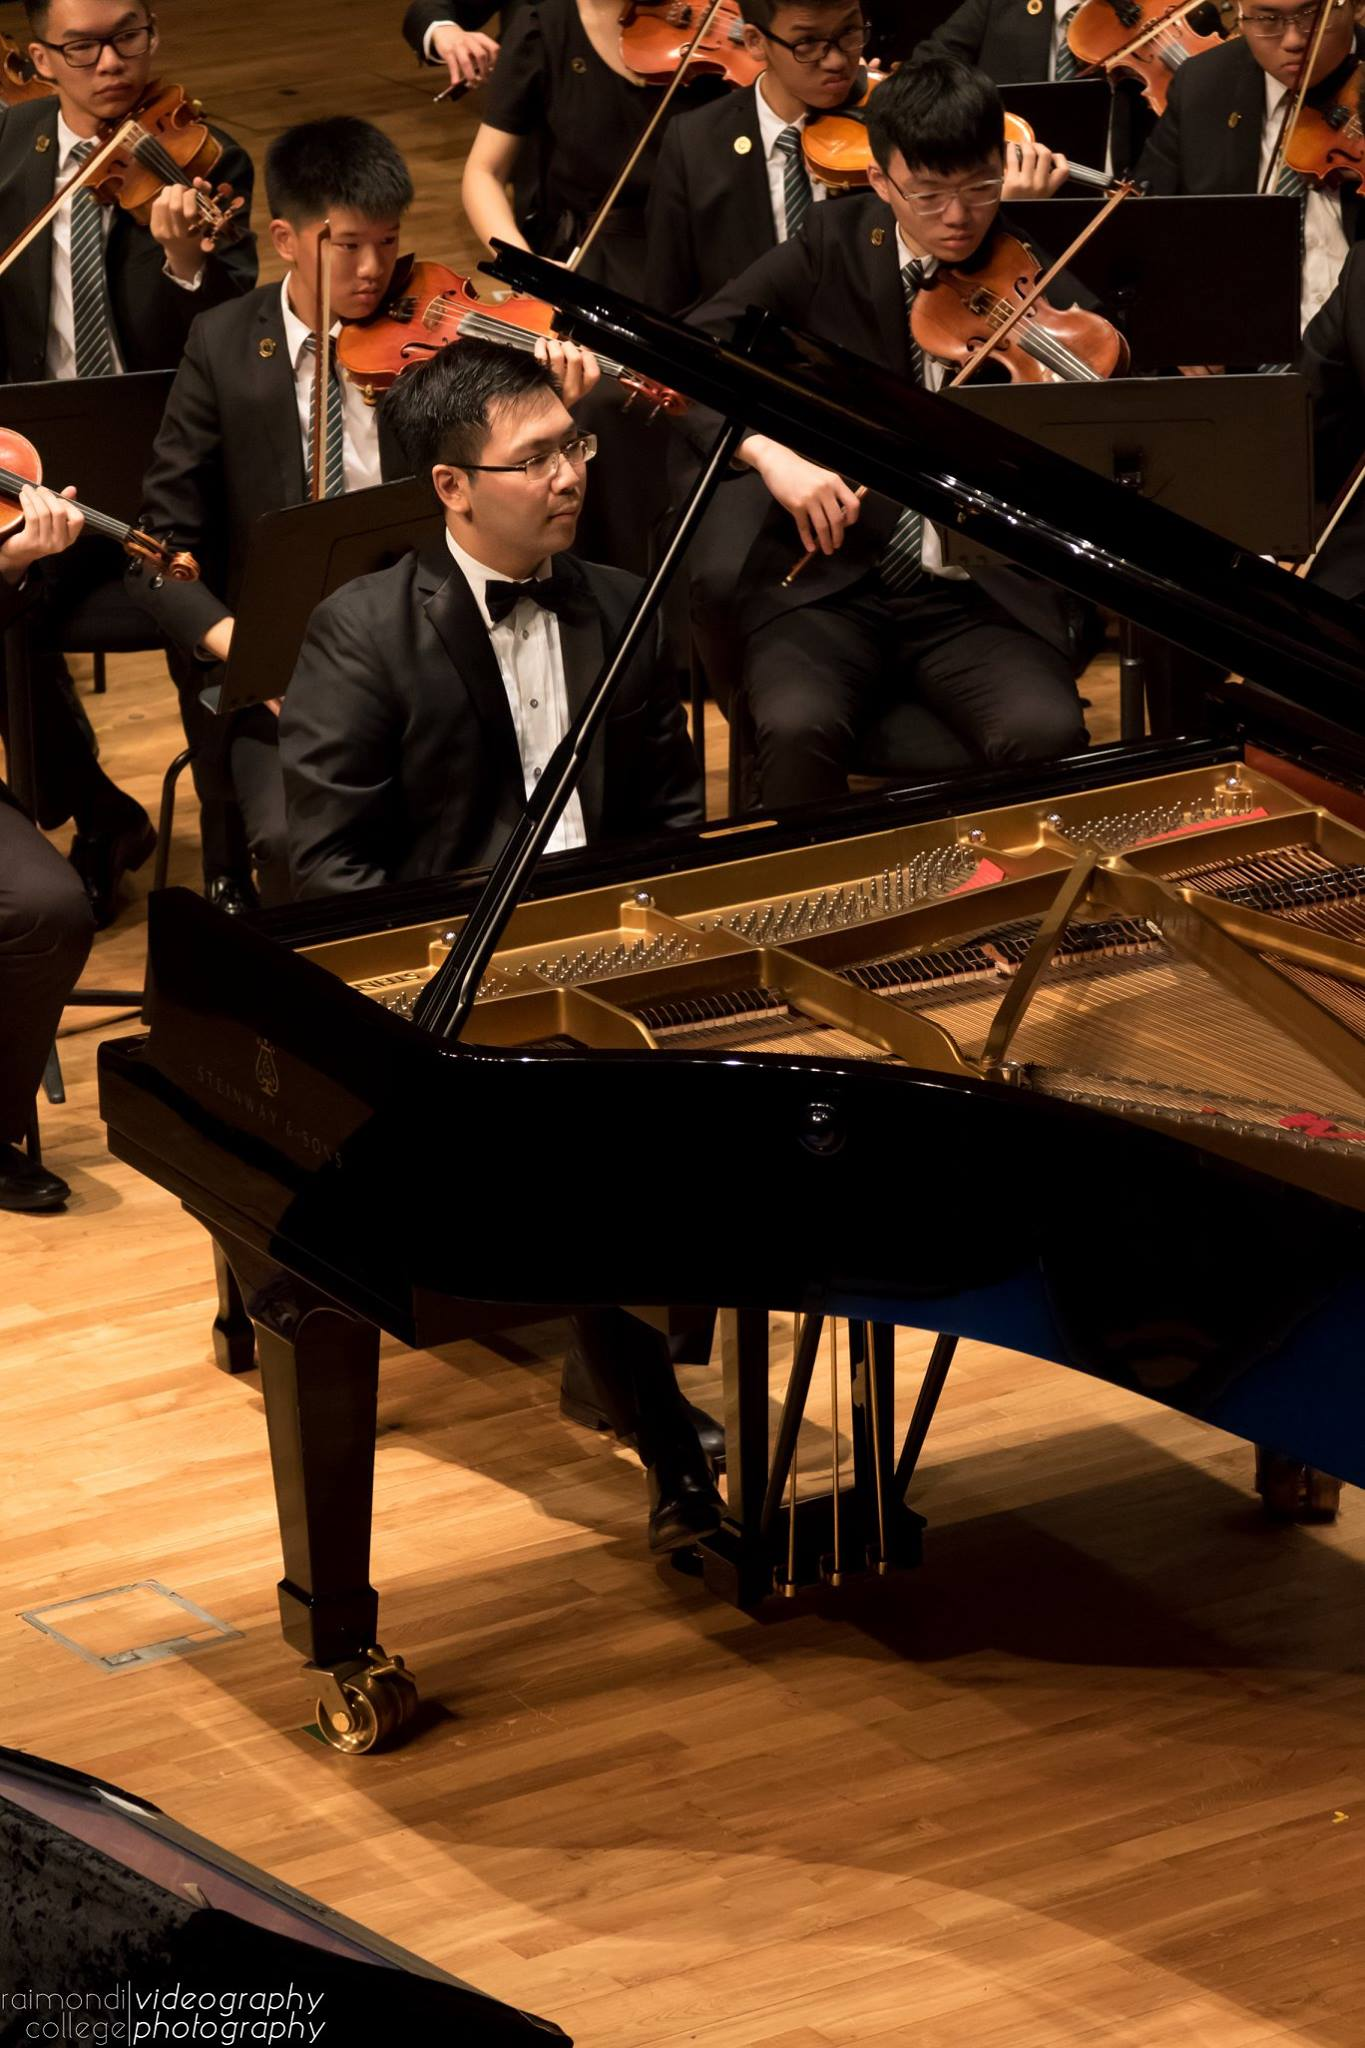 Siu Hei performing Edvard Grieg's  Piano Concerto in A minor  with the Raimondi College Orchestra in the Hong Kong City Hall Concert Hall, Hong Kong.